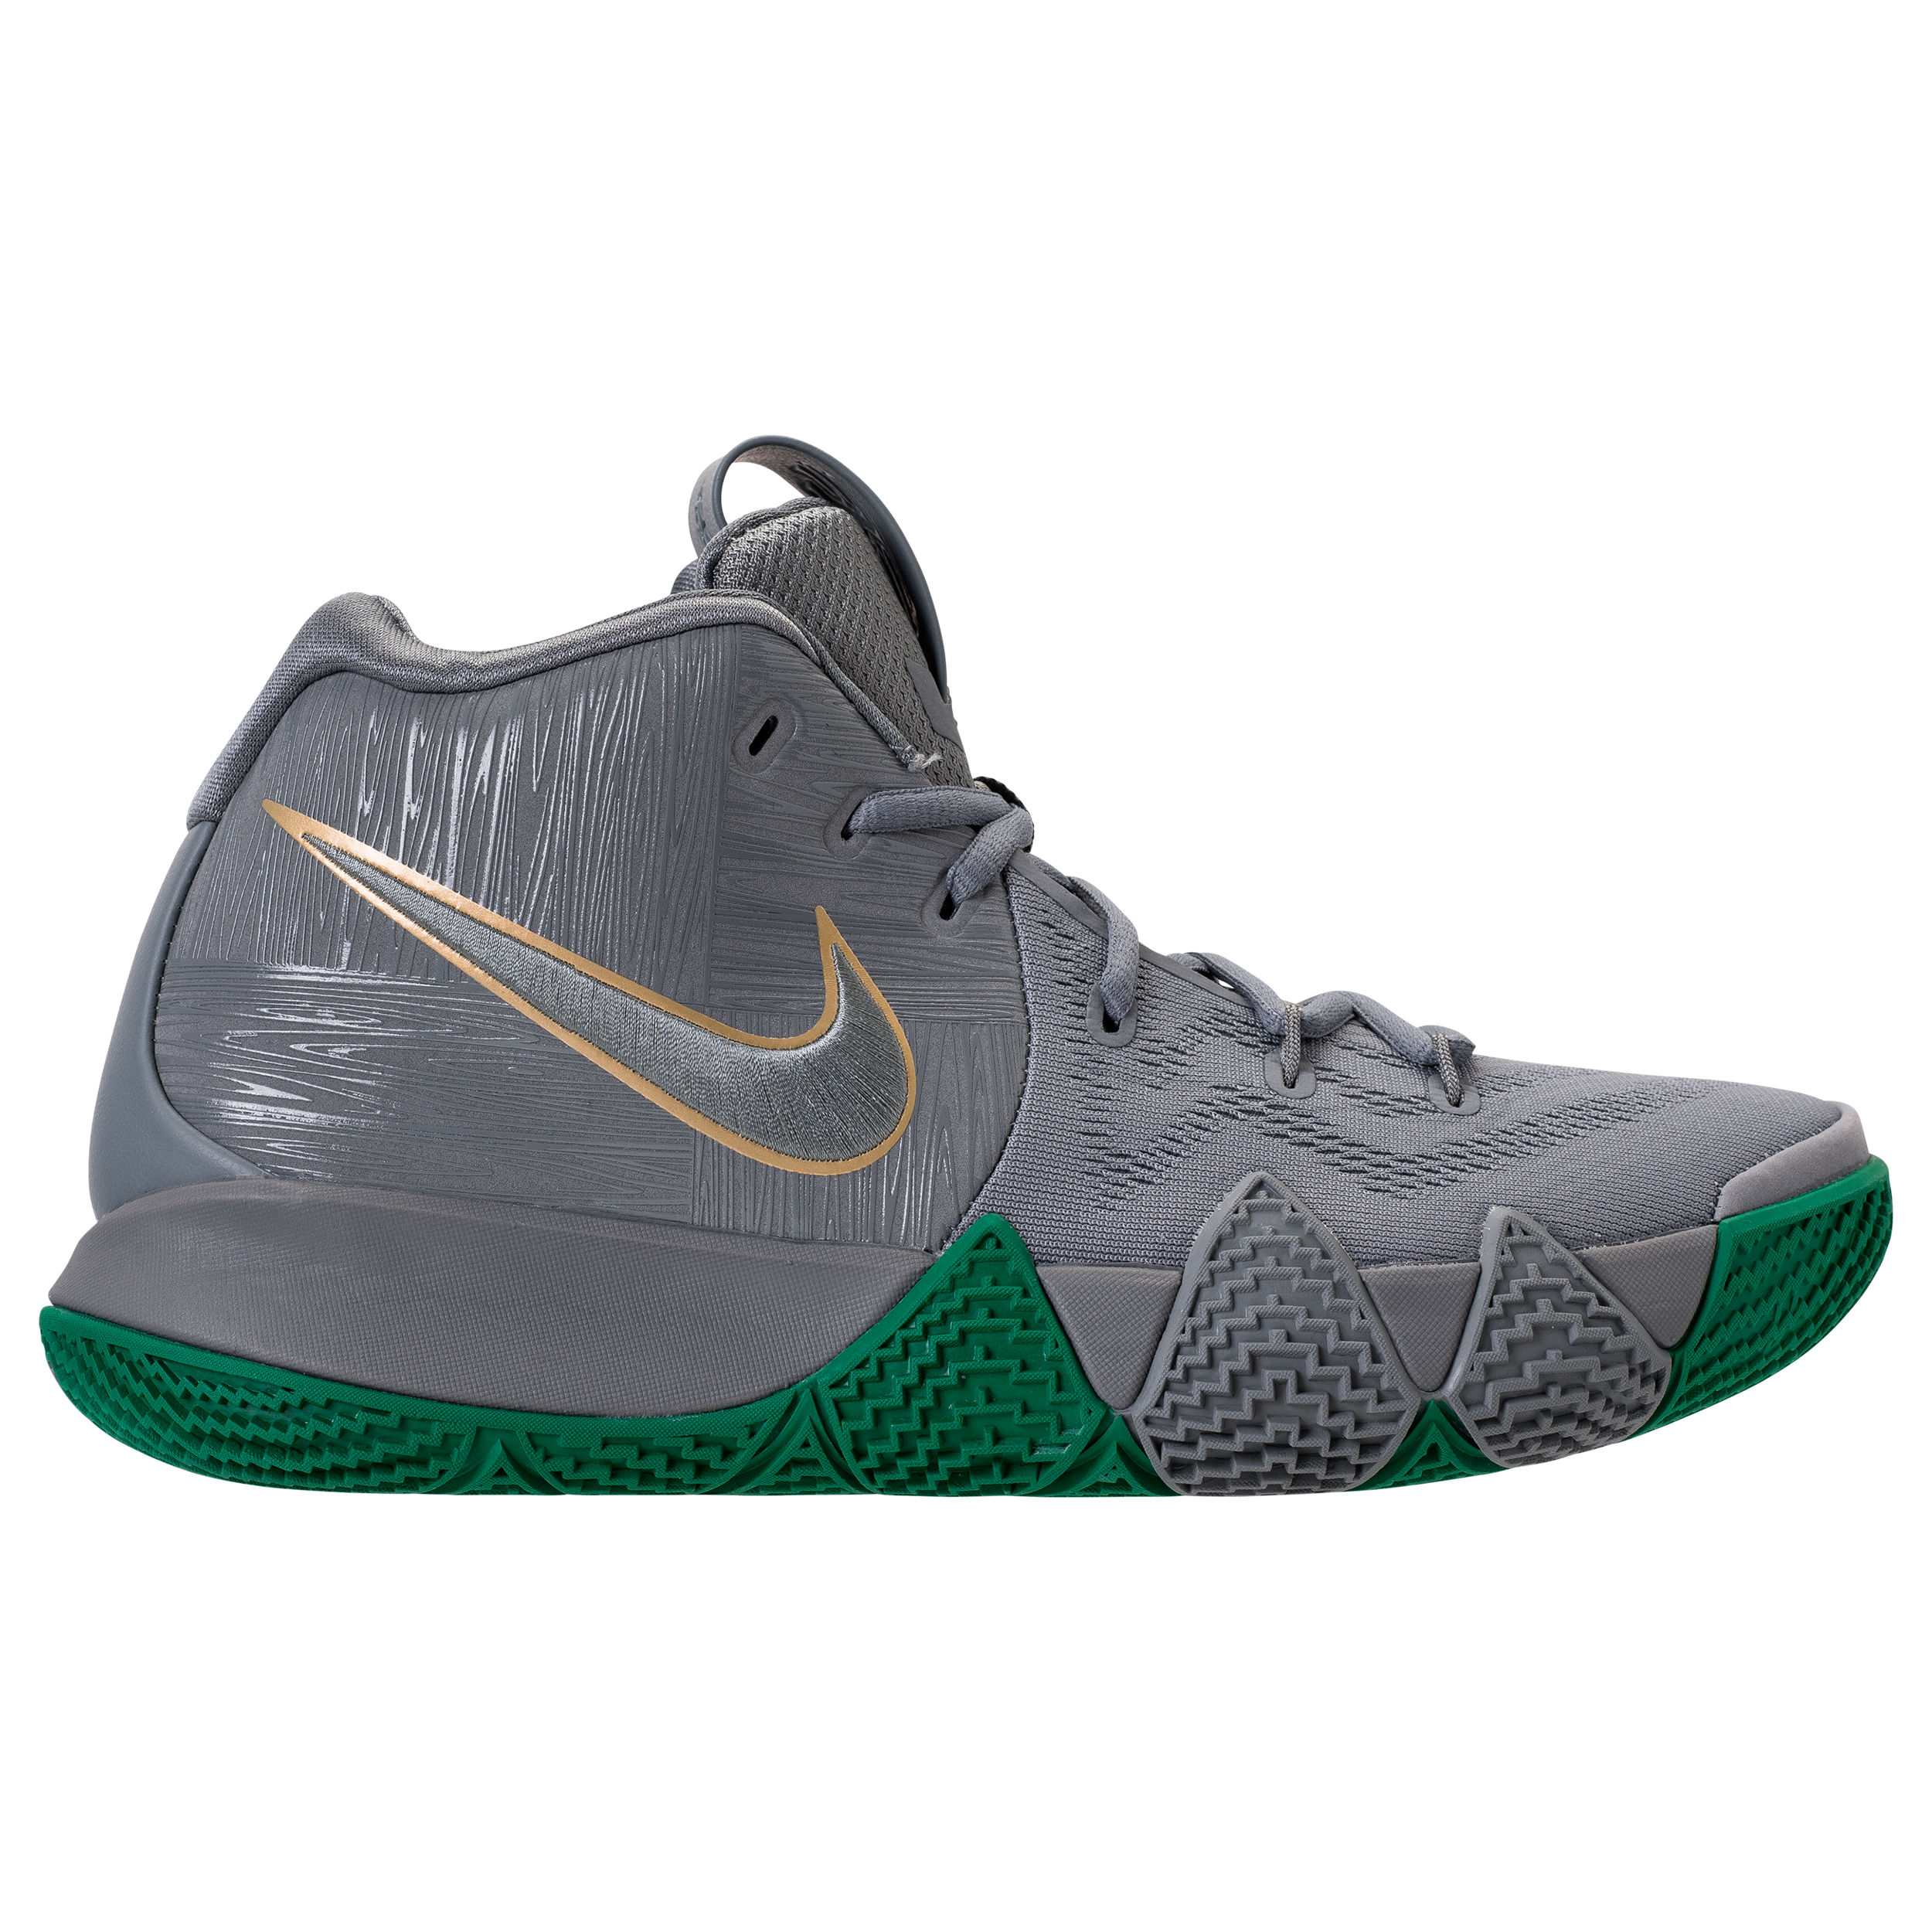 best service 5b8e2 57191 The Nike Kyrie 4 'City of Guardians' Releases Next Week at ...